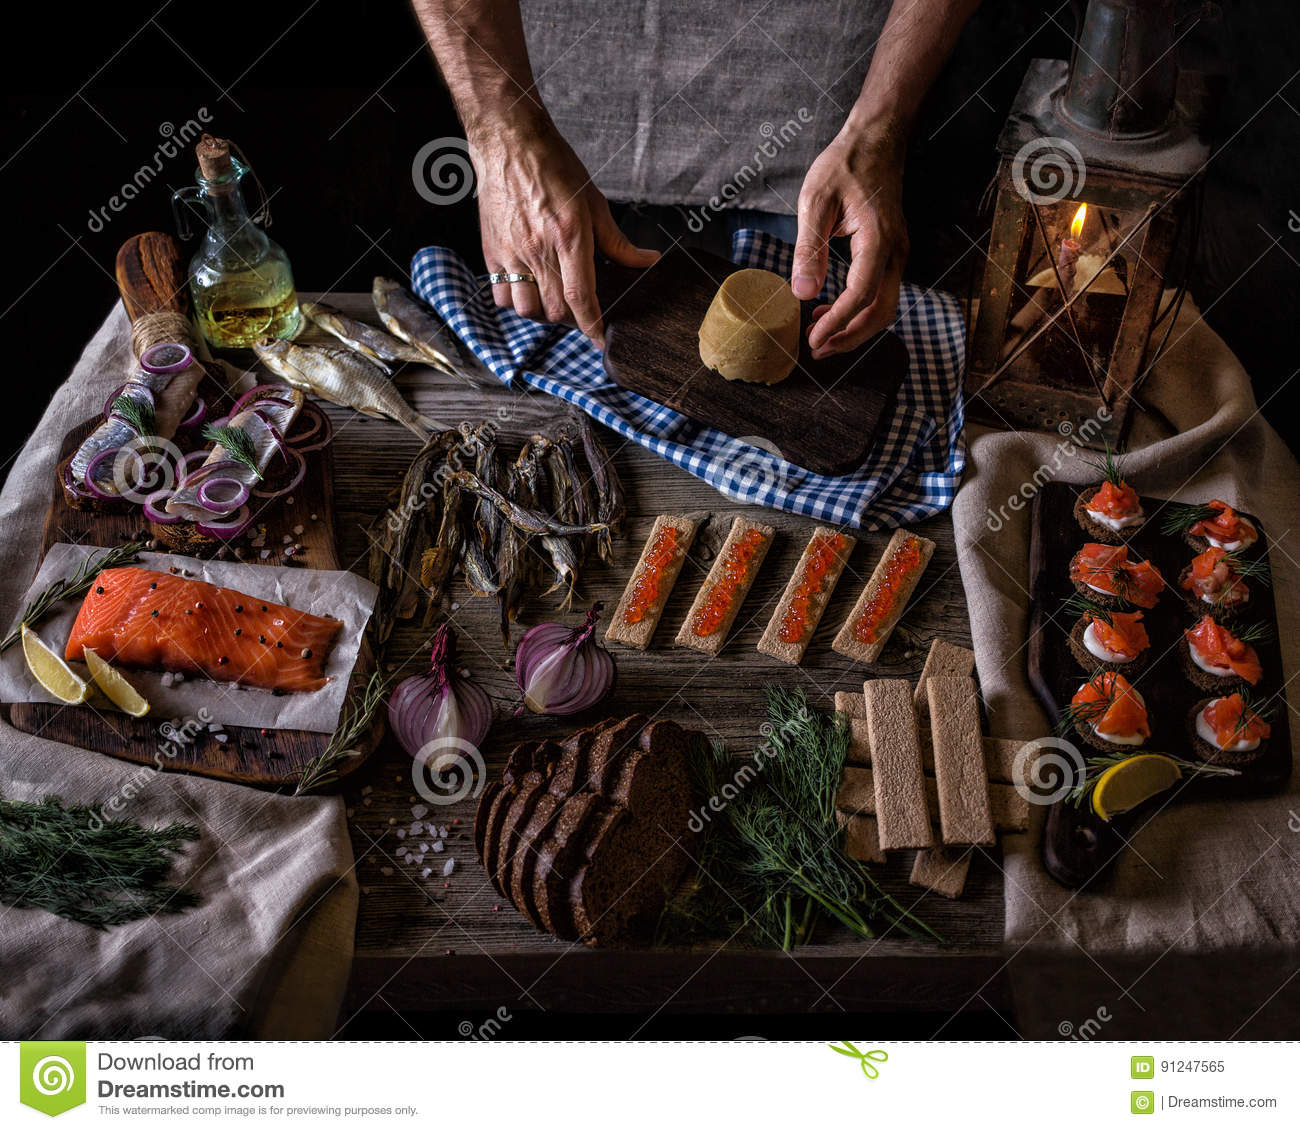 cuisine norvégienne traditionnelle photo stock - image: 91247565